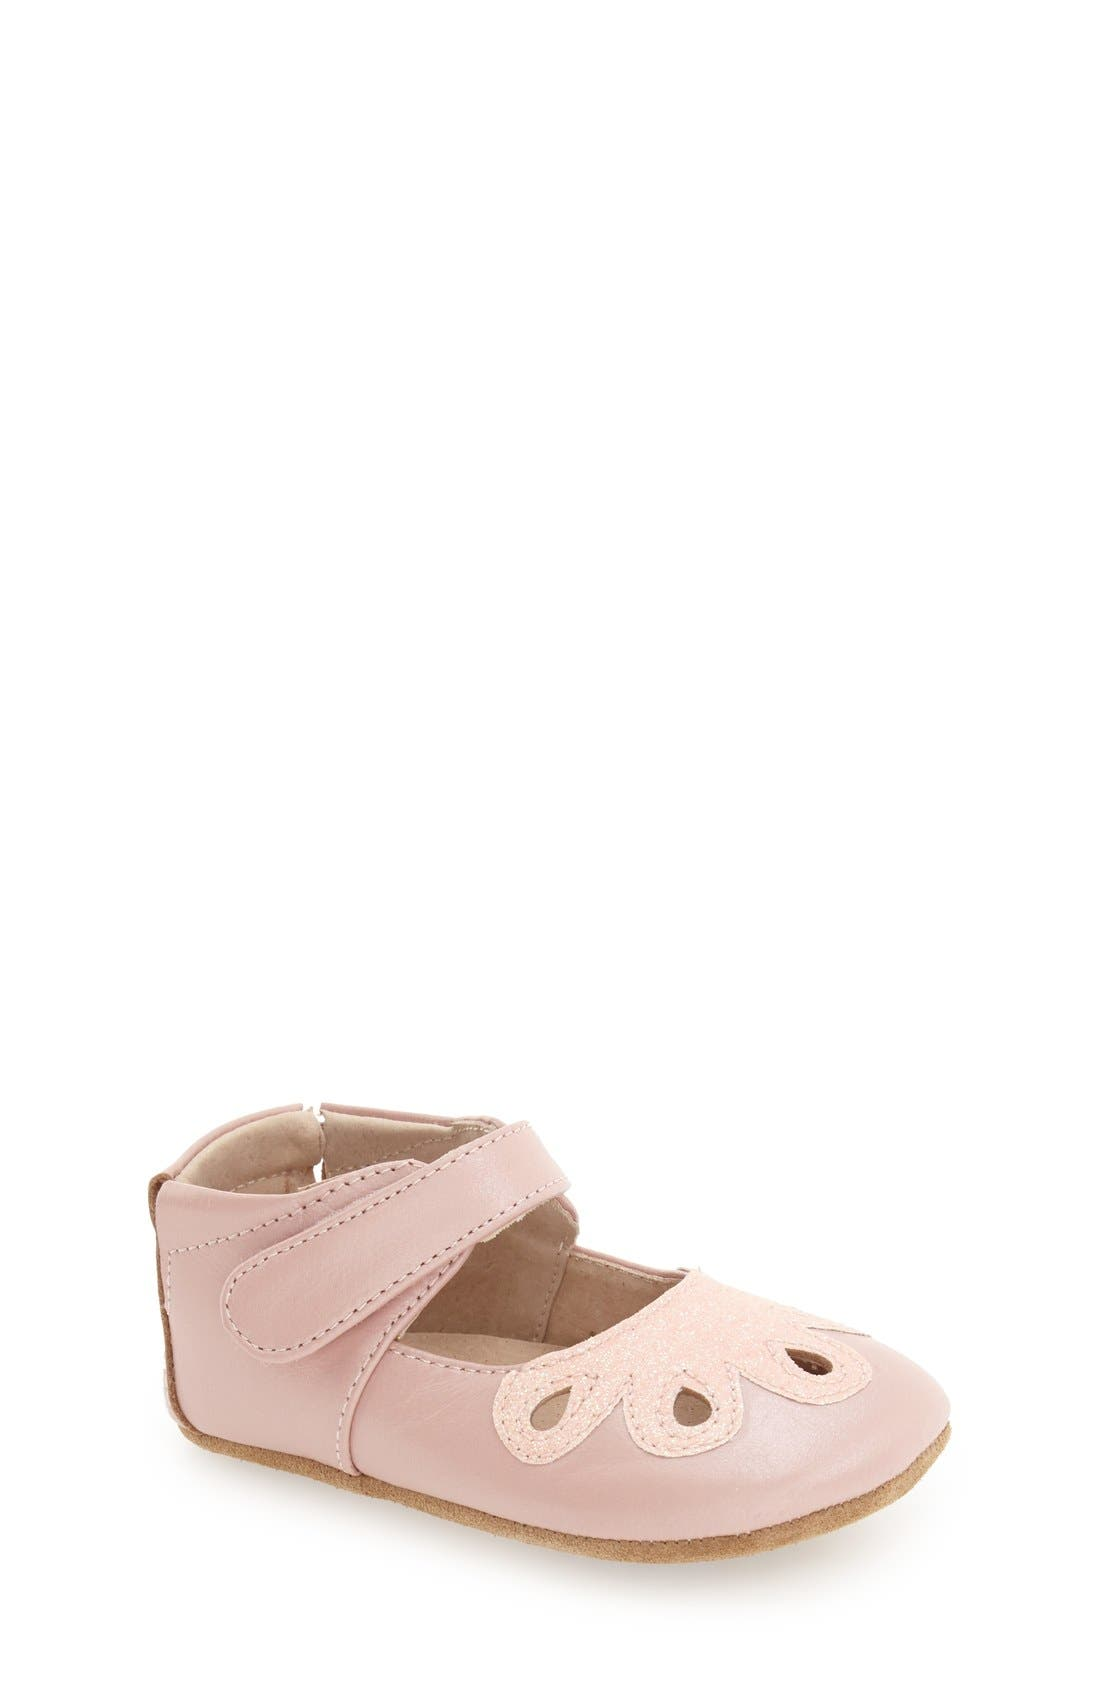 Livie & Luca 'Petal' Mary Jane Crib Shoe (Baby & Walker)